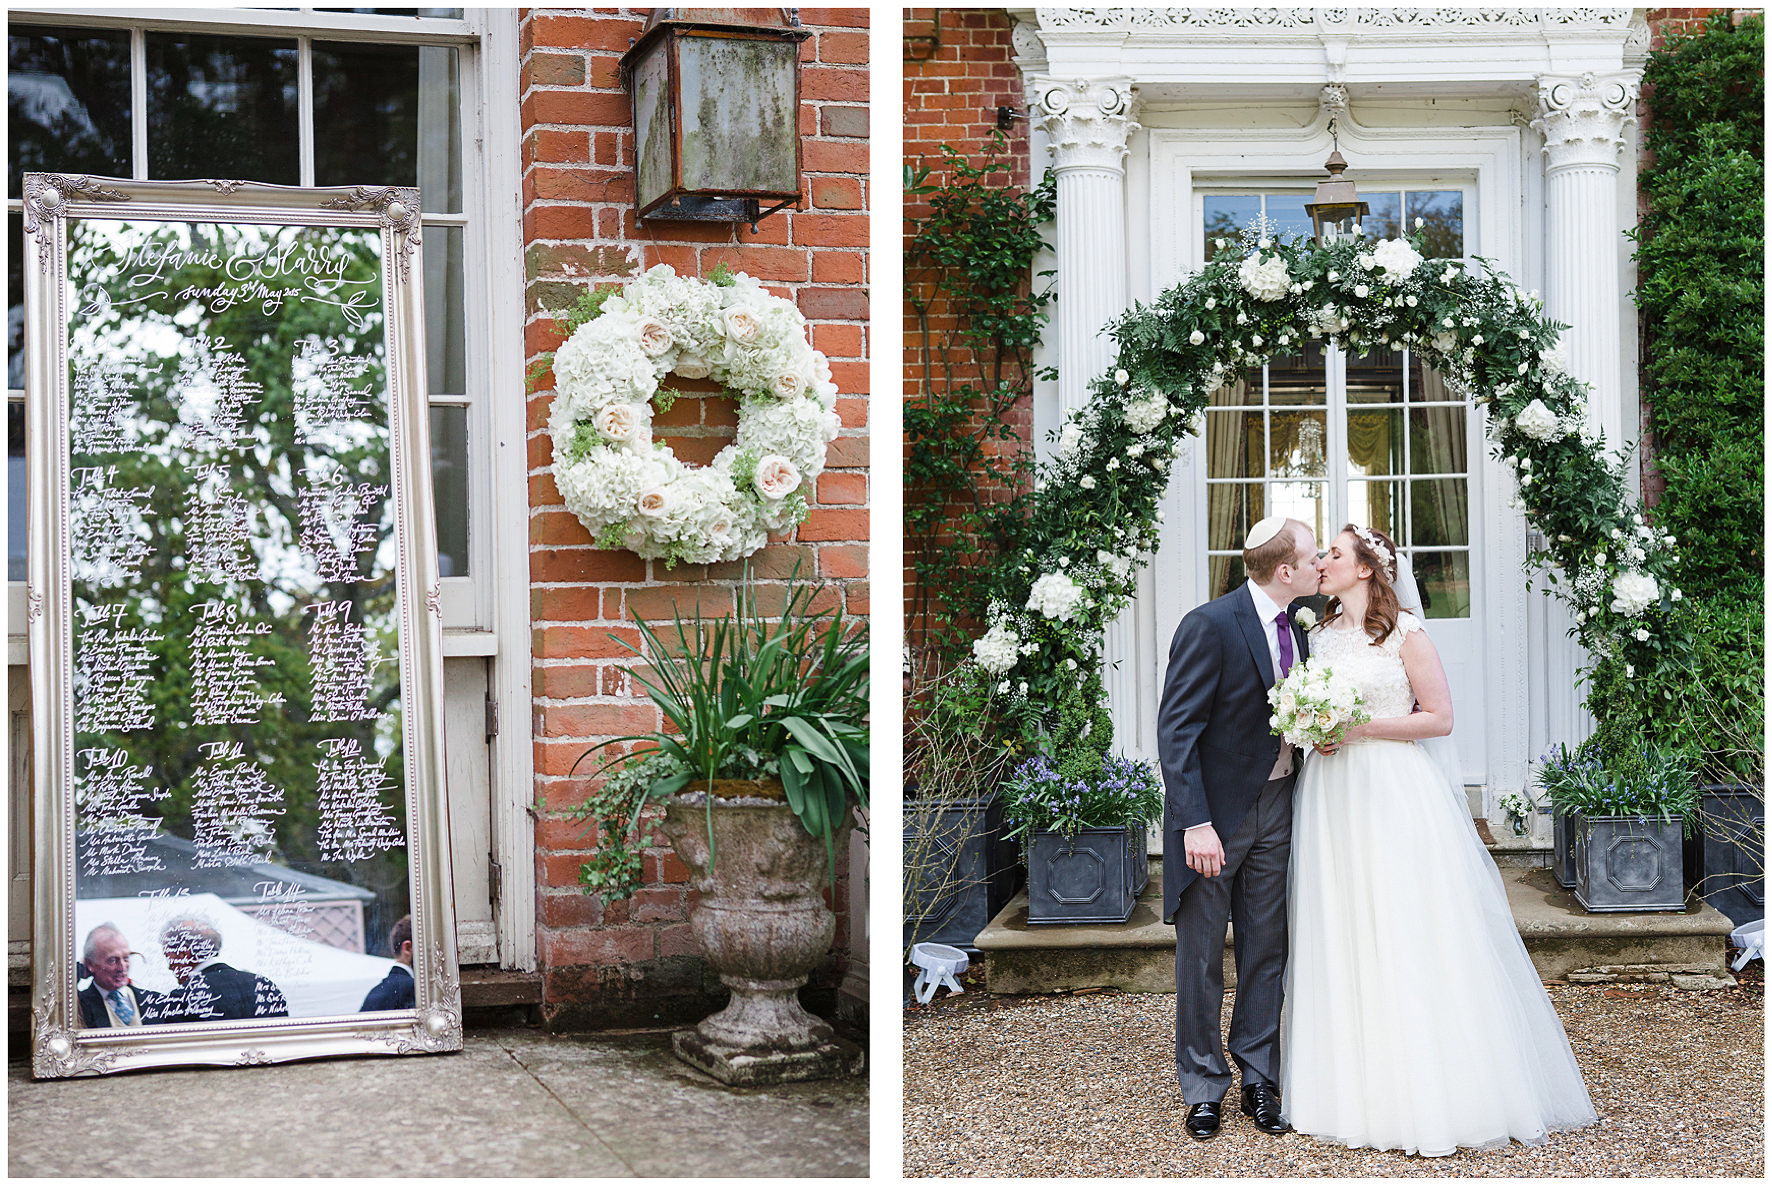 luxury wedding, berkshire, home wedding, table plan, mirror, calligraphy, floral details, floral arch, bridal couple, Lucy Davenport Photography